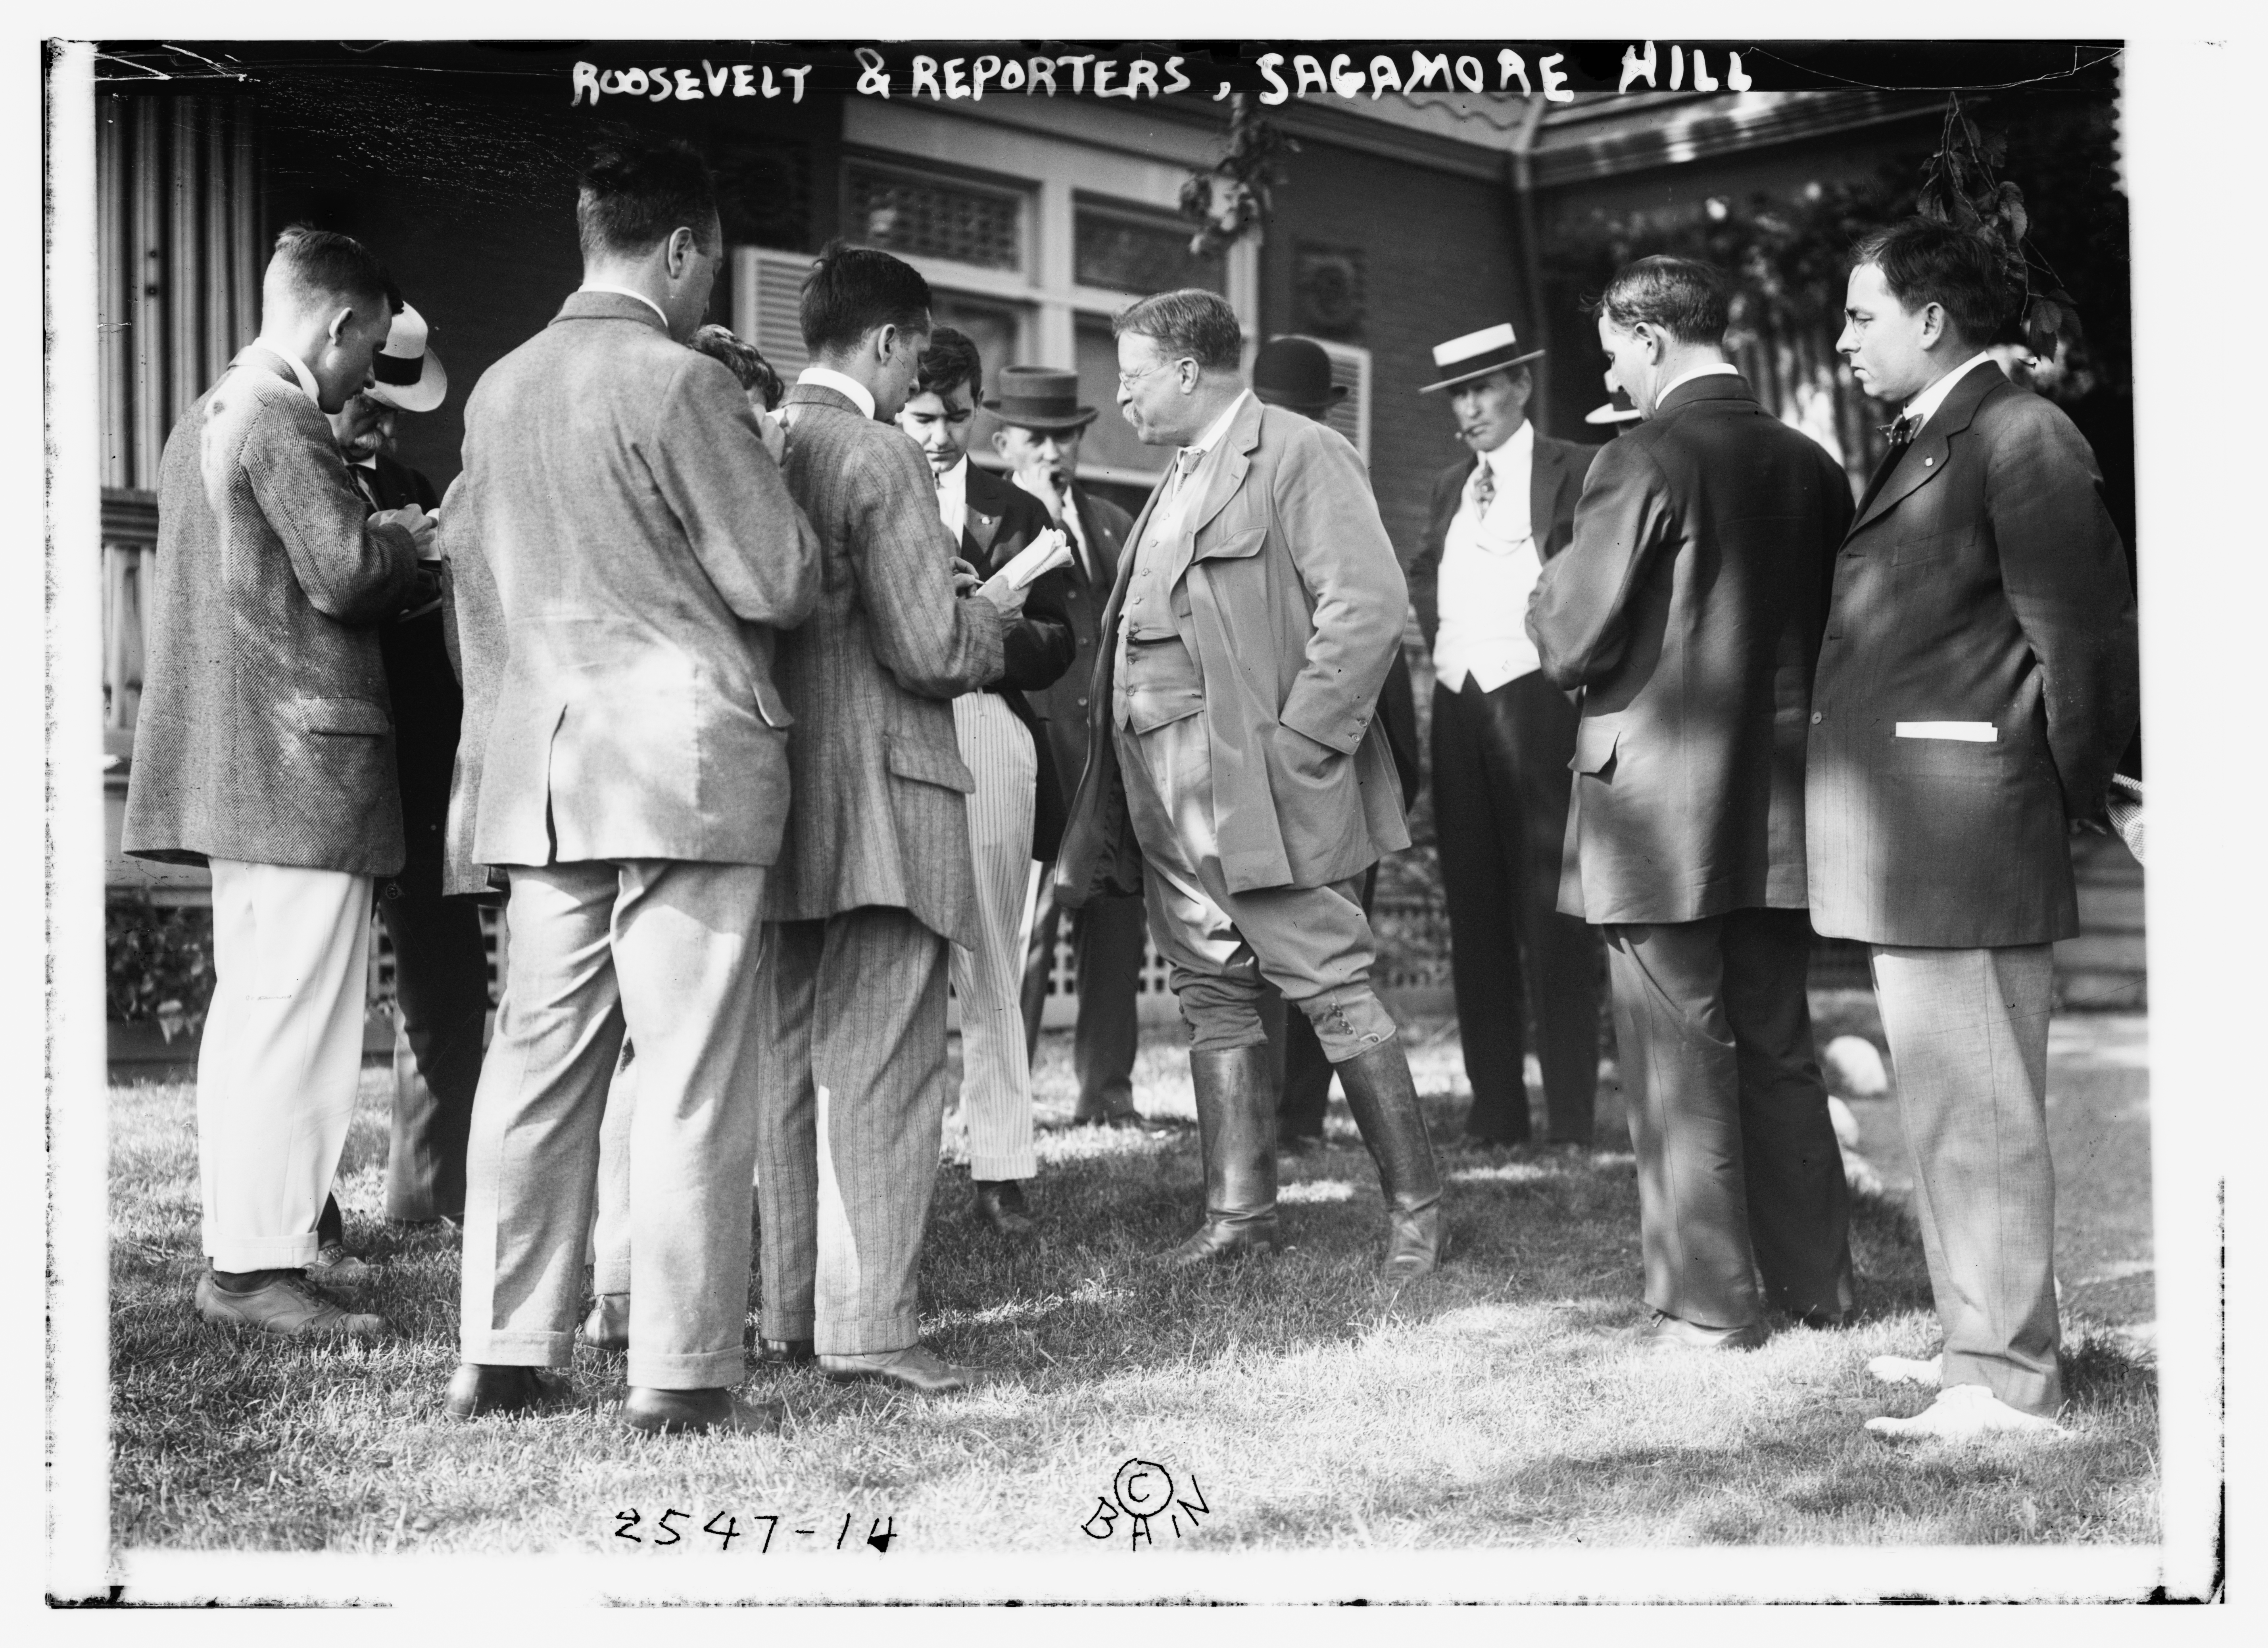 President Theodore Roosevelt and Reporters at Sagamore Hill